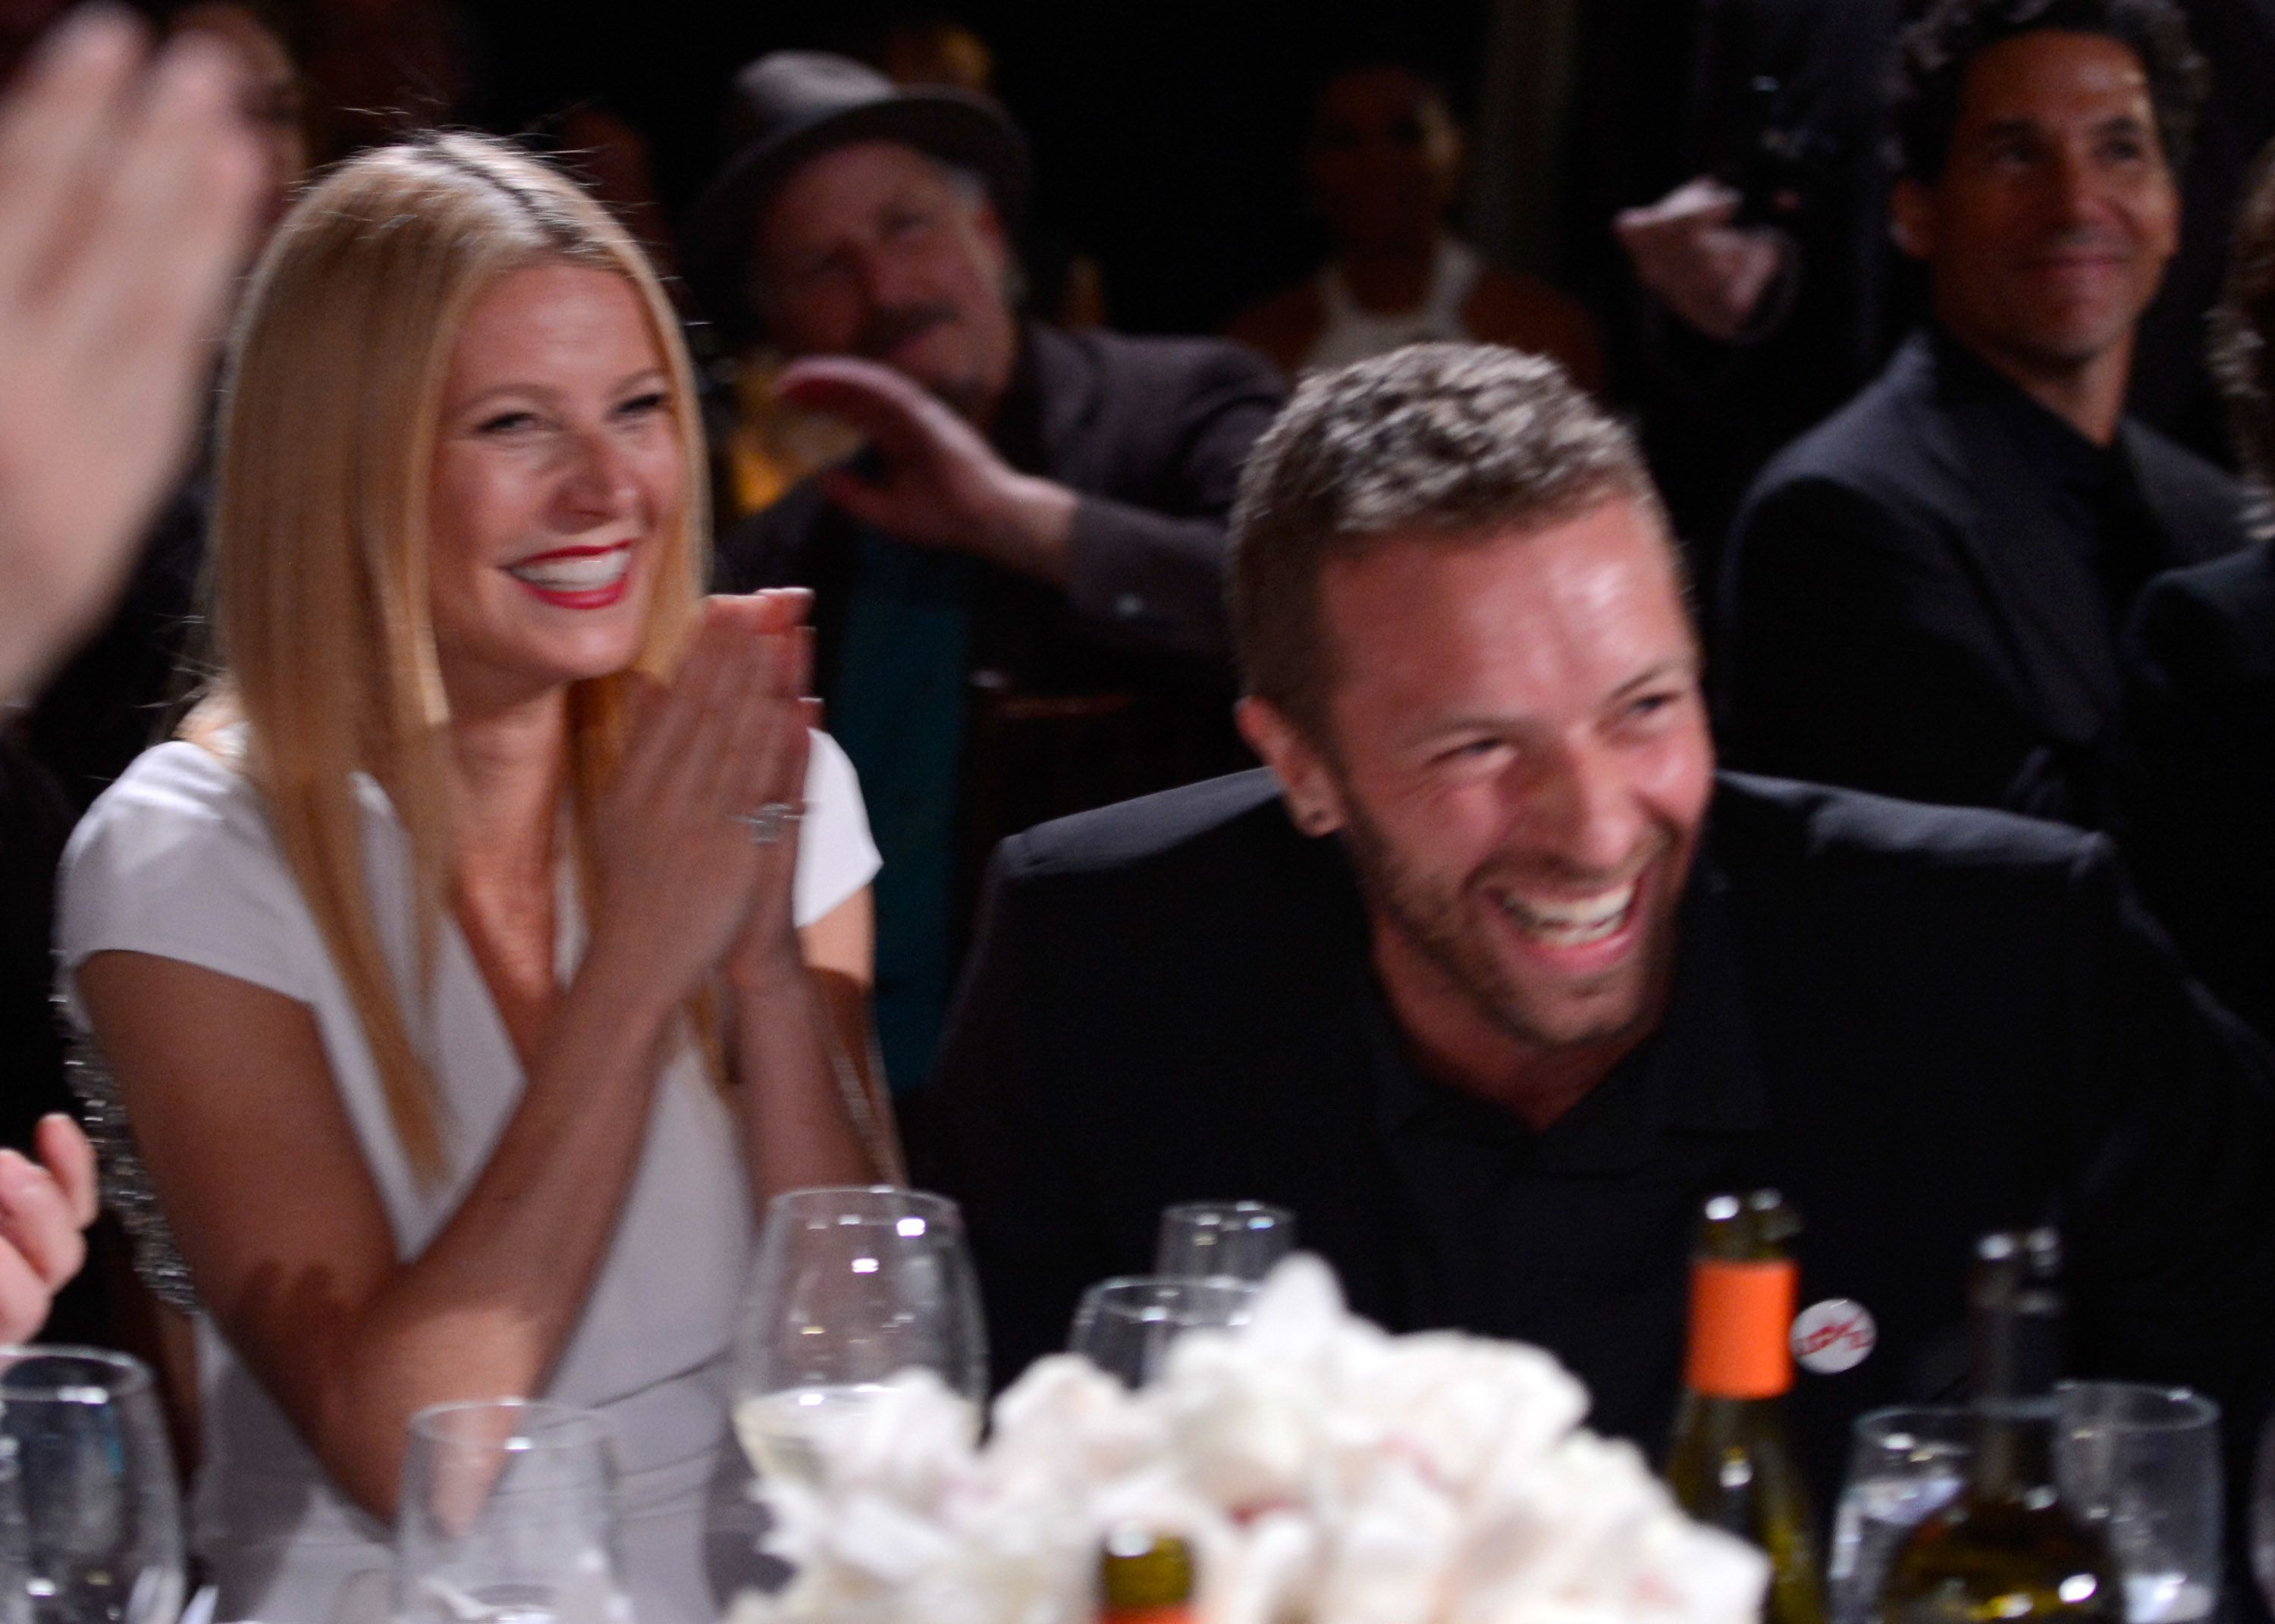 Gwyneth Paltrow and Chris Martin split in March 2014 after a decade of